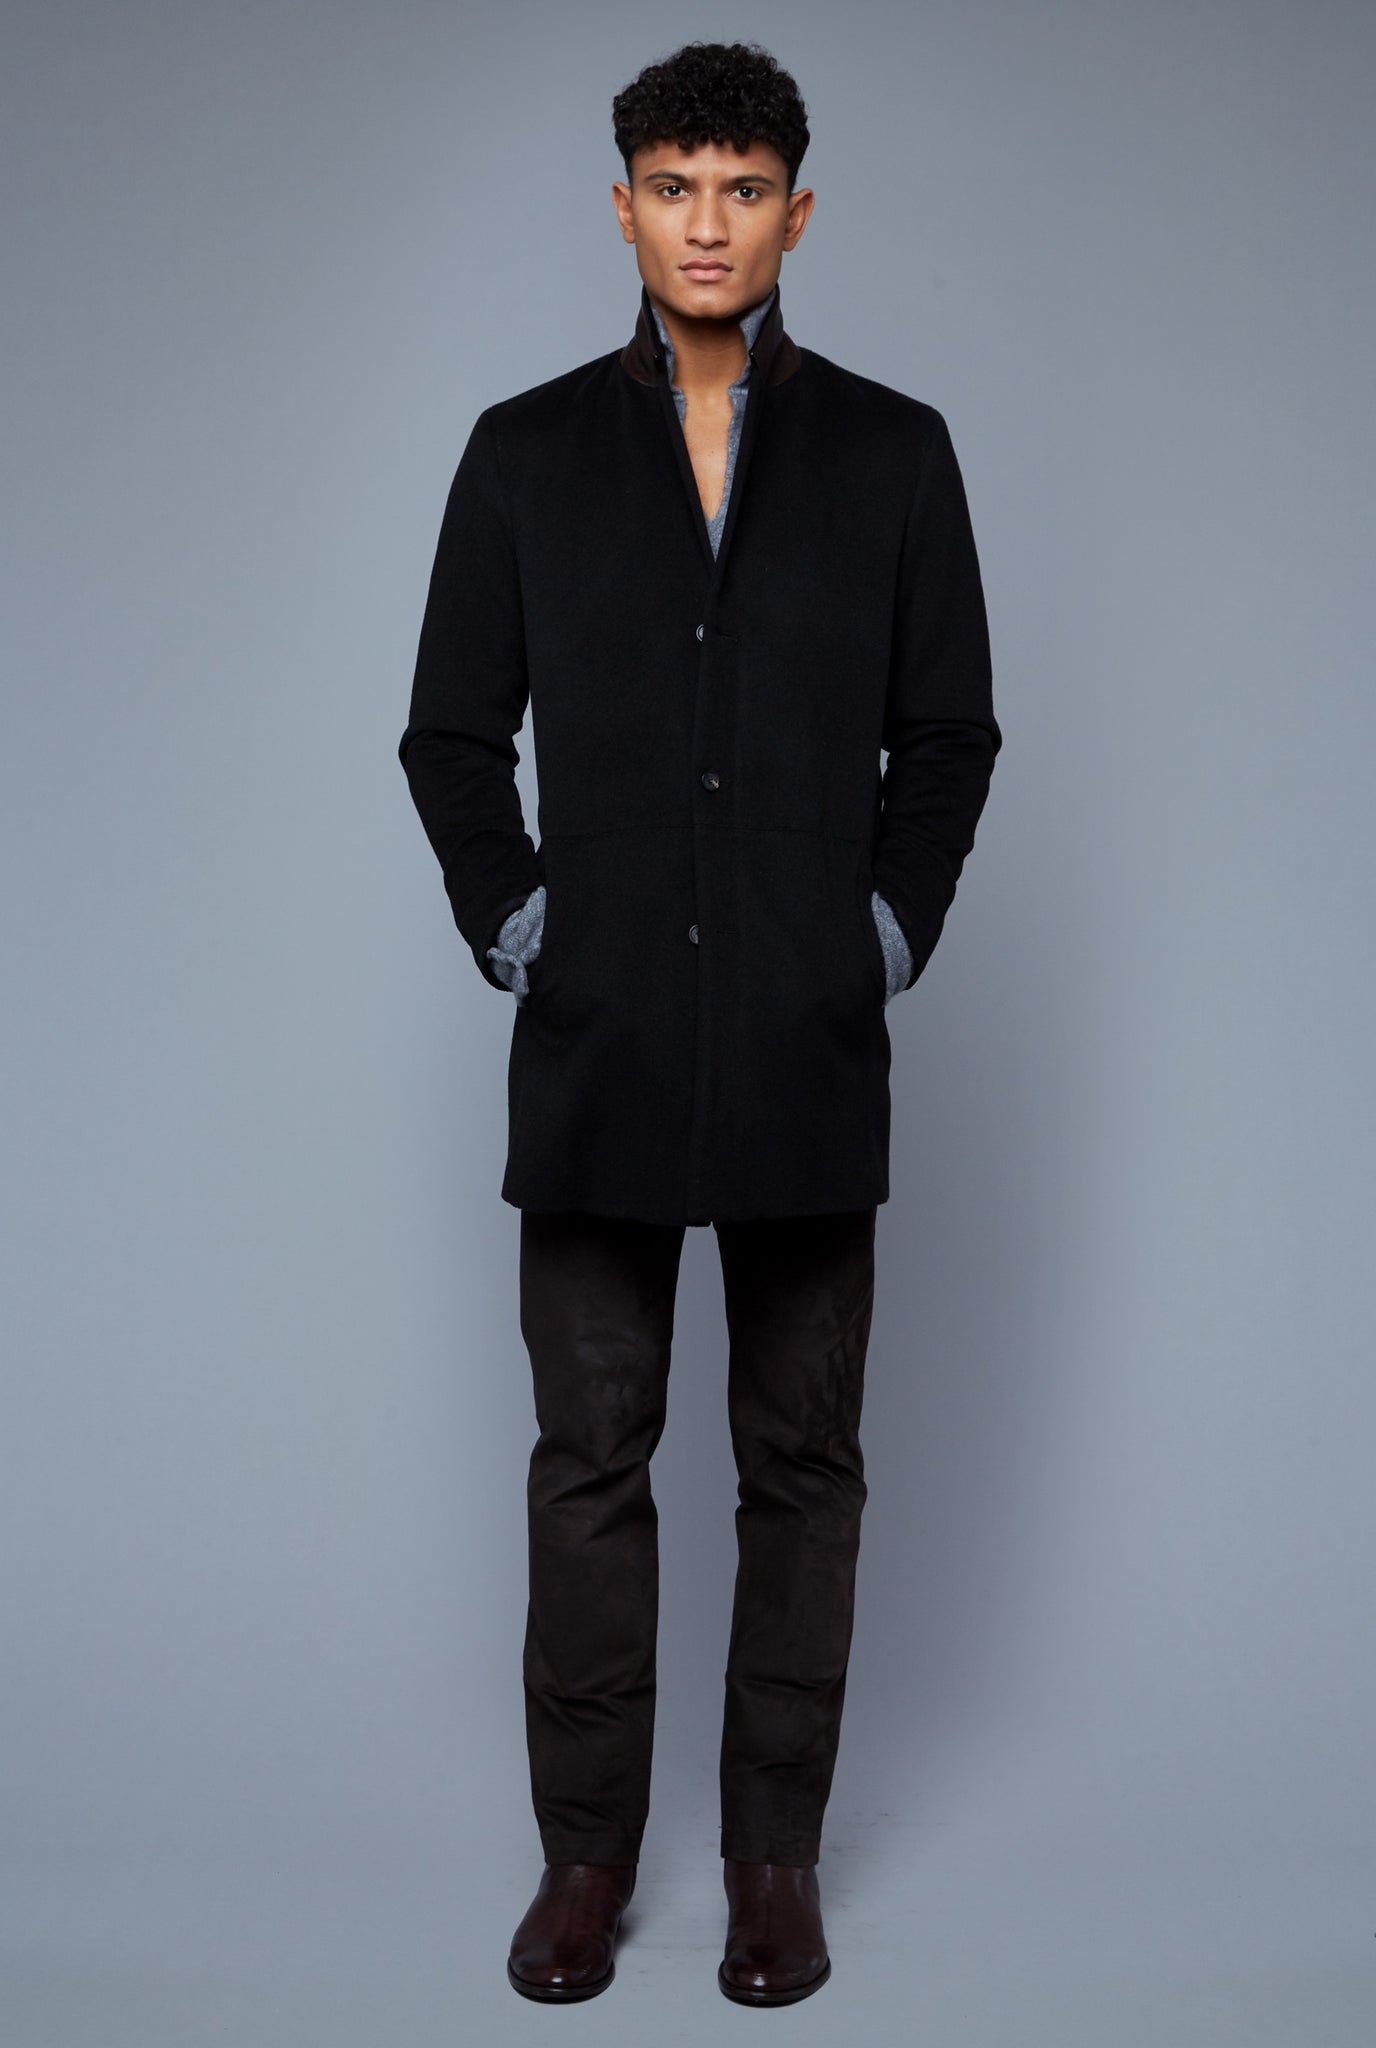 Front View: Model Tre Boutilier wearing Camel Coat